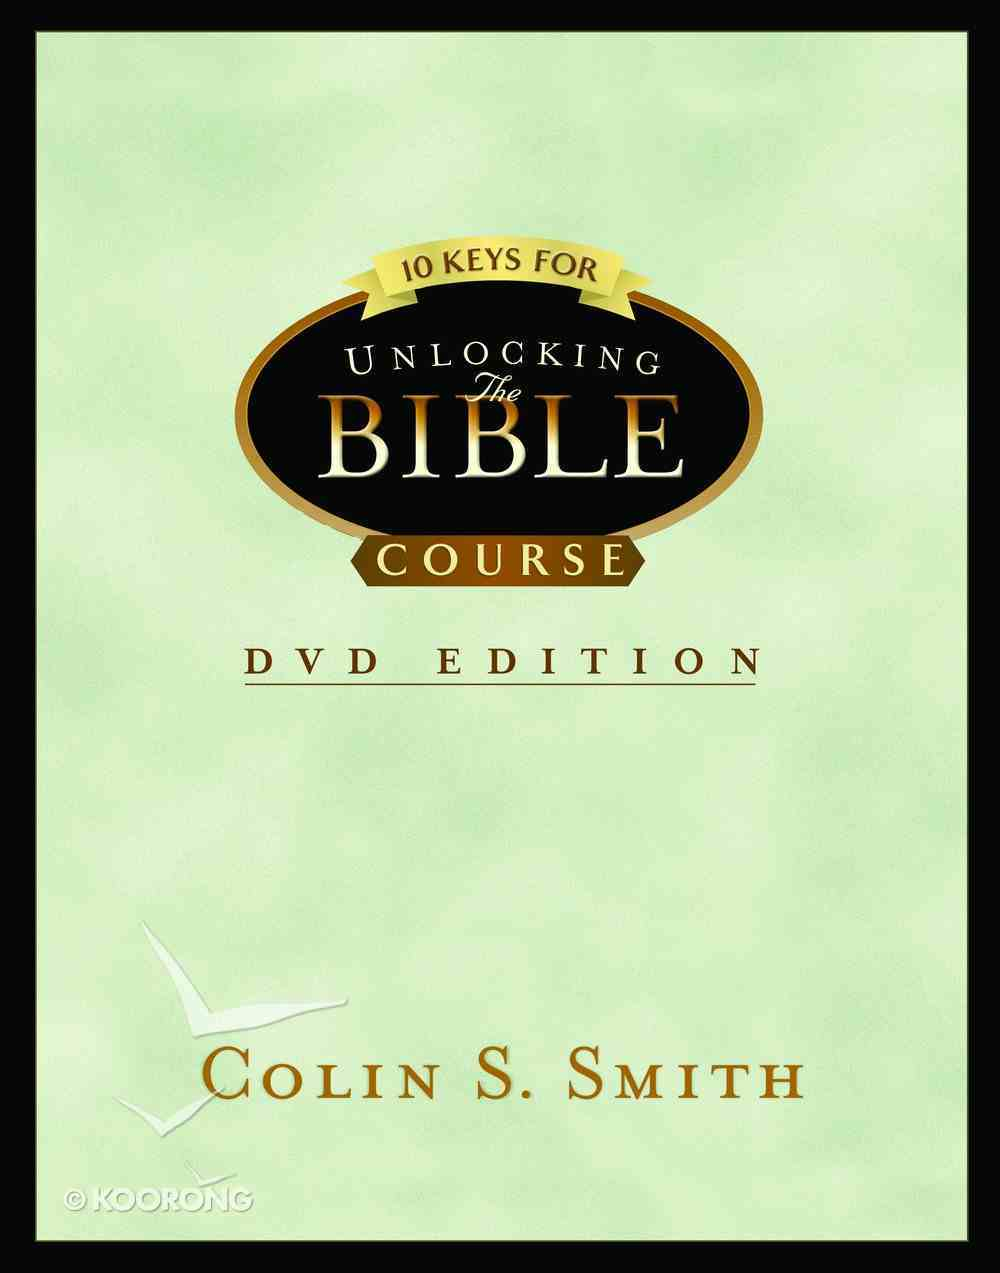 10 Keys For Unlocking the Bible Course (Dvd) DVD